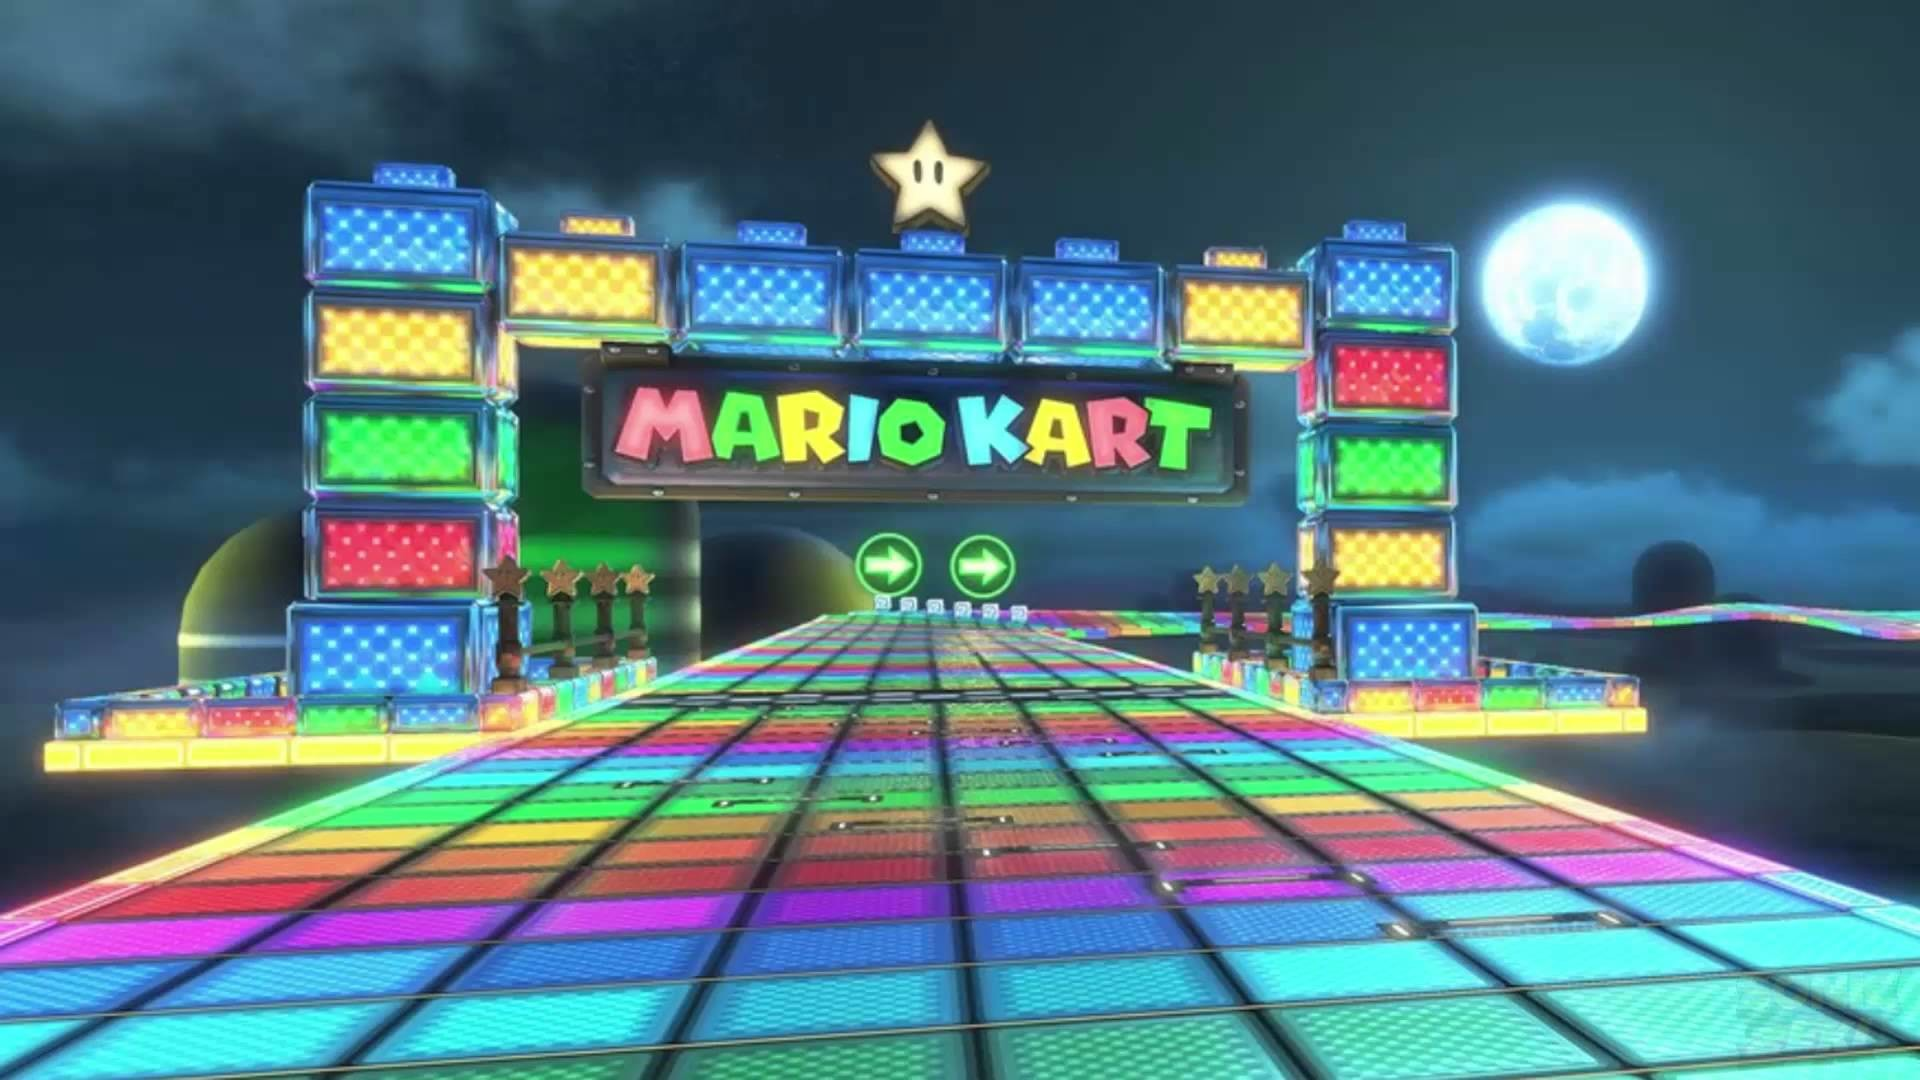 Mario Kart 8 Background: Mario Kart 8 Wallpaper HD (72+ Images